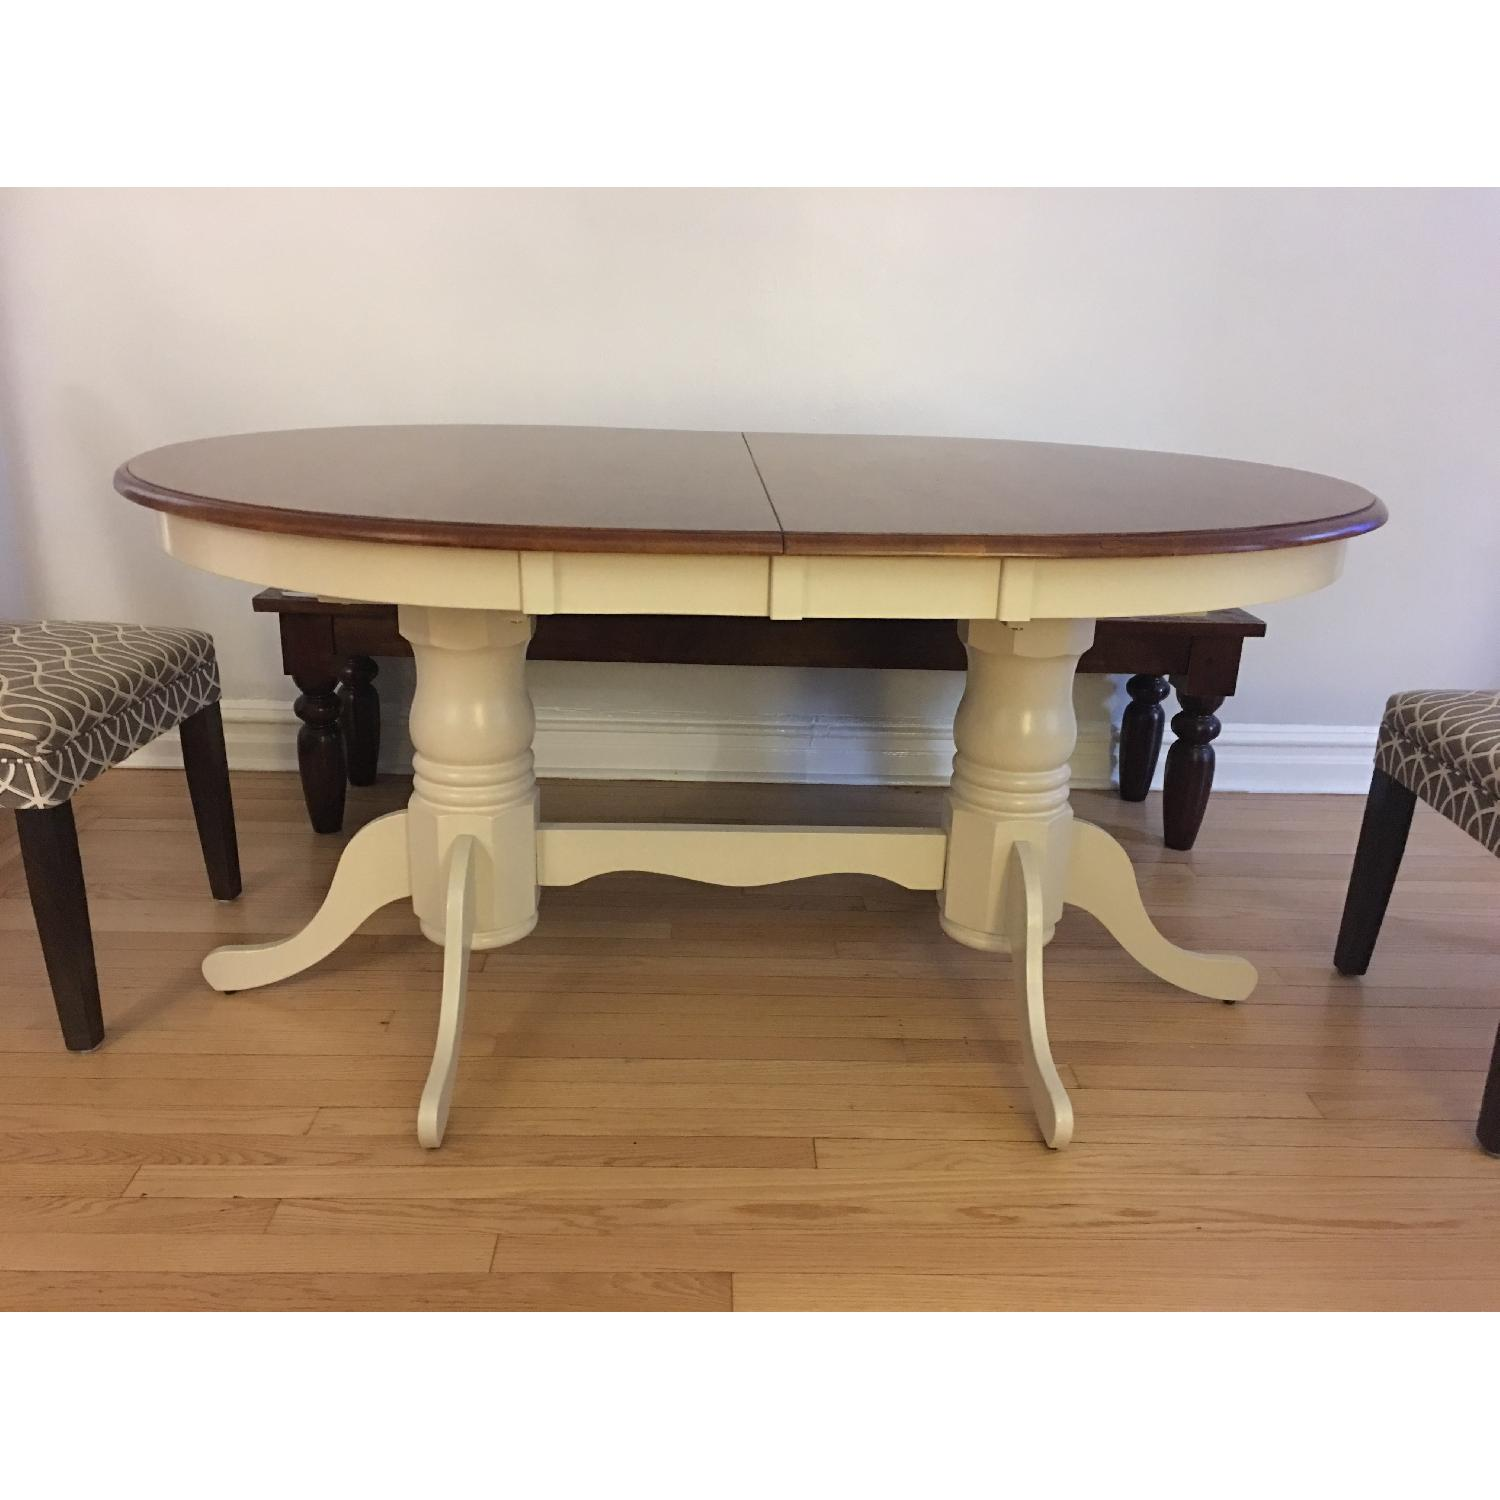 French Dining Table in Antique White/Chestnut - image-1